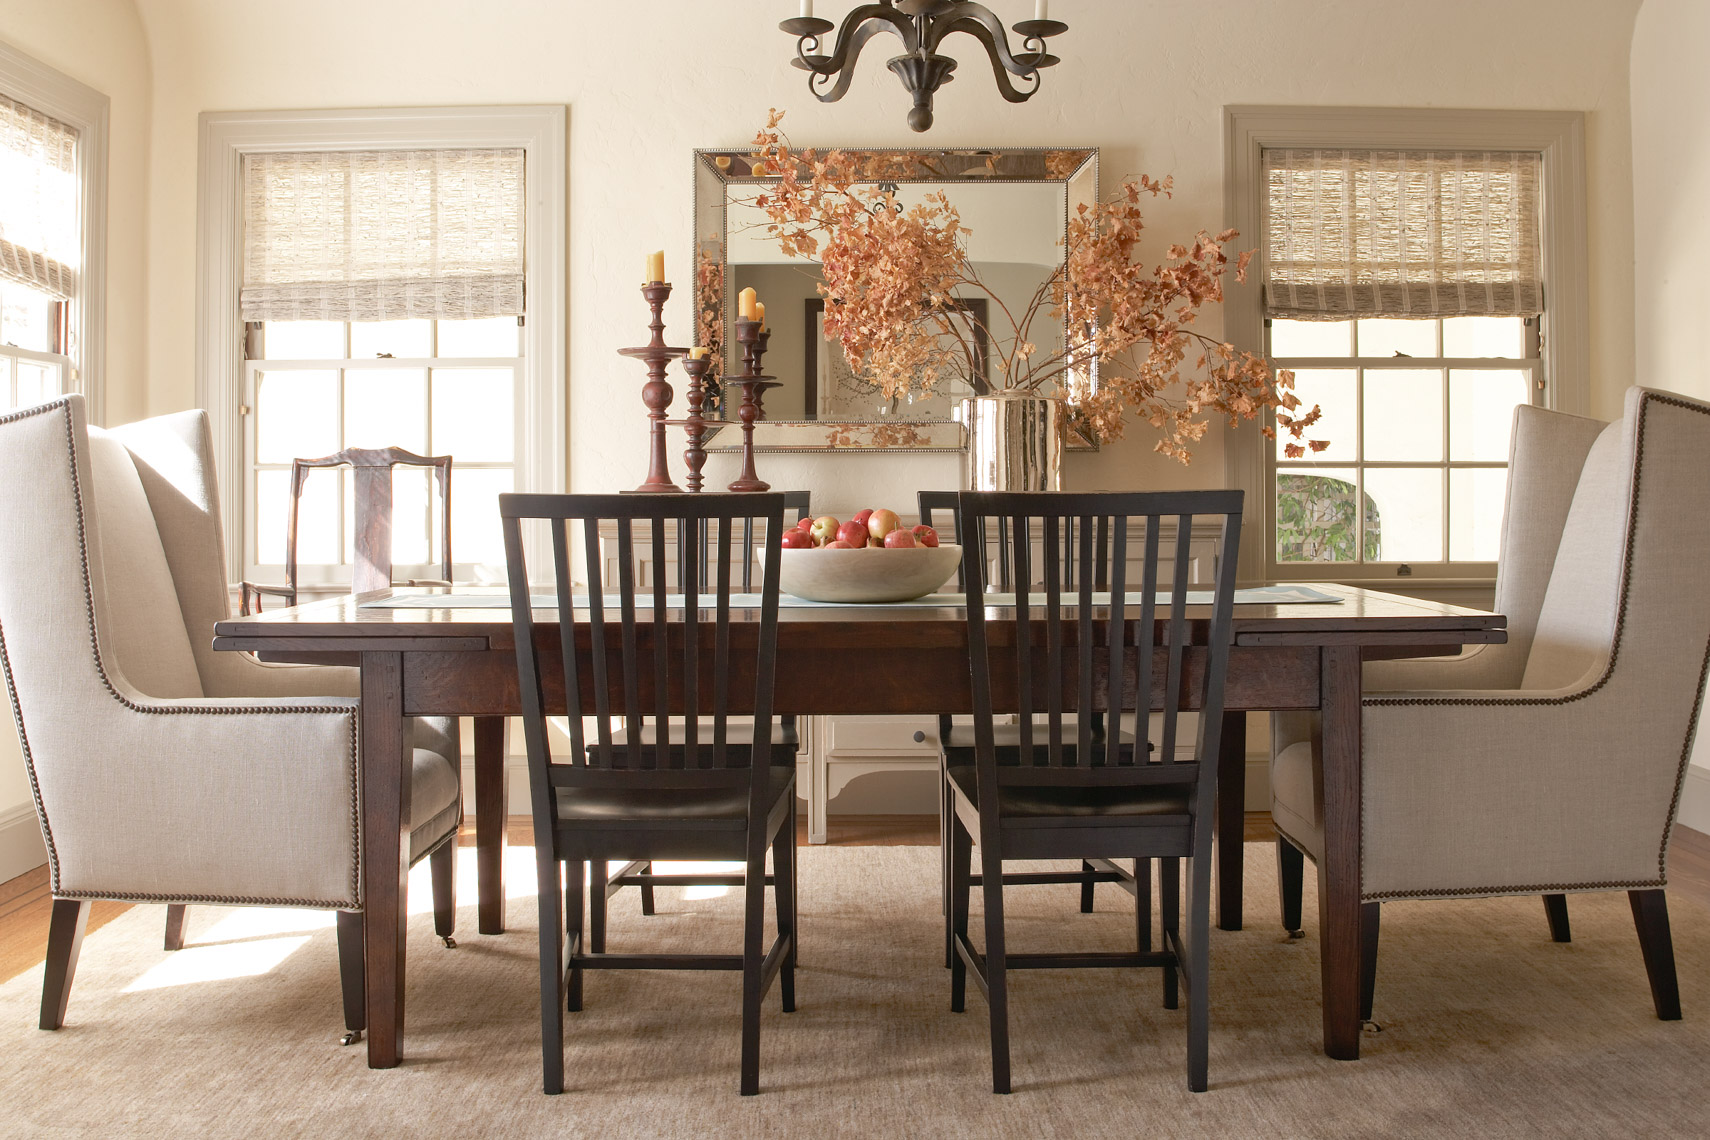 wooden dining table with 2 grey armchairs and black dinner chairs San Francisco interior photographer